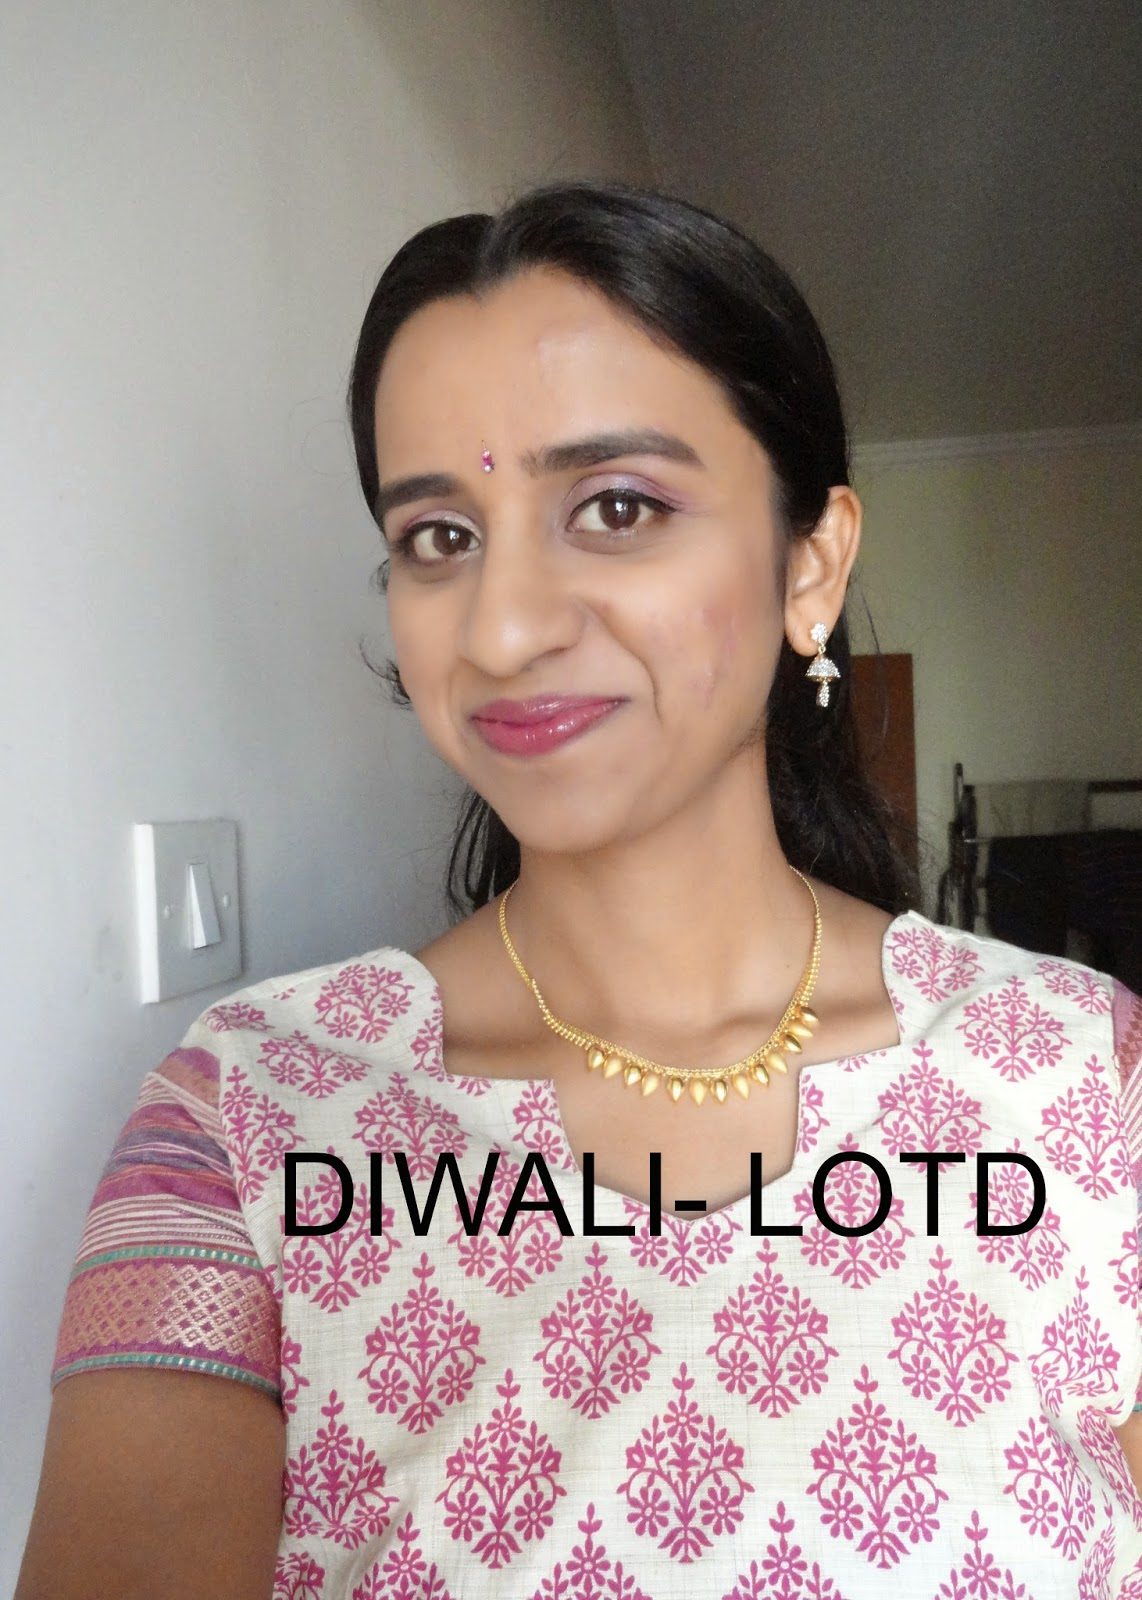 LOTD: My makeup and outfit for Diwali 2014 image